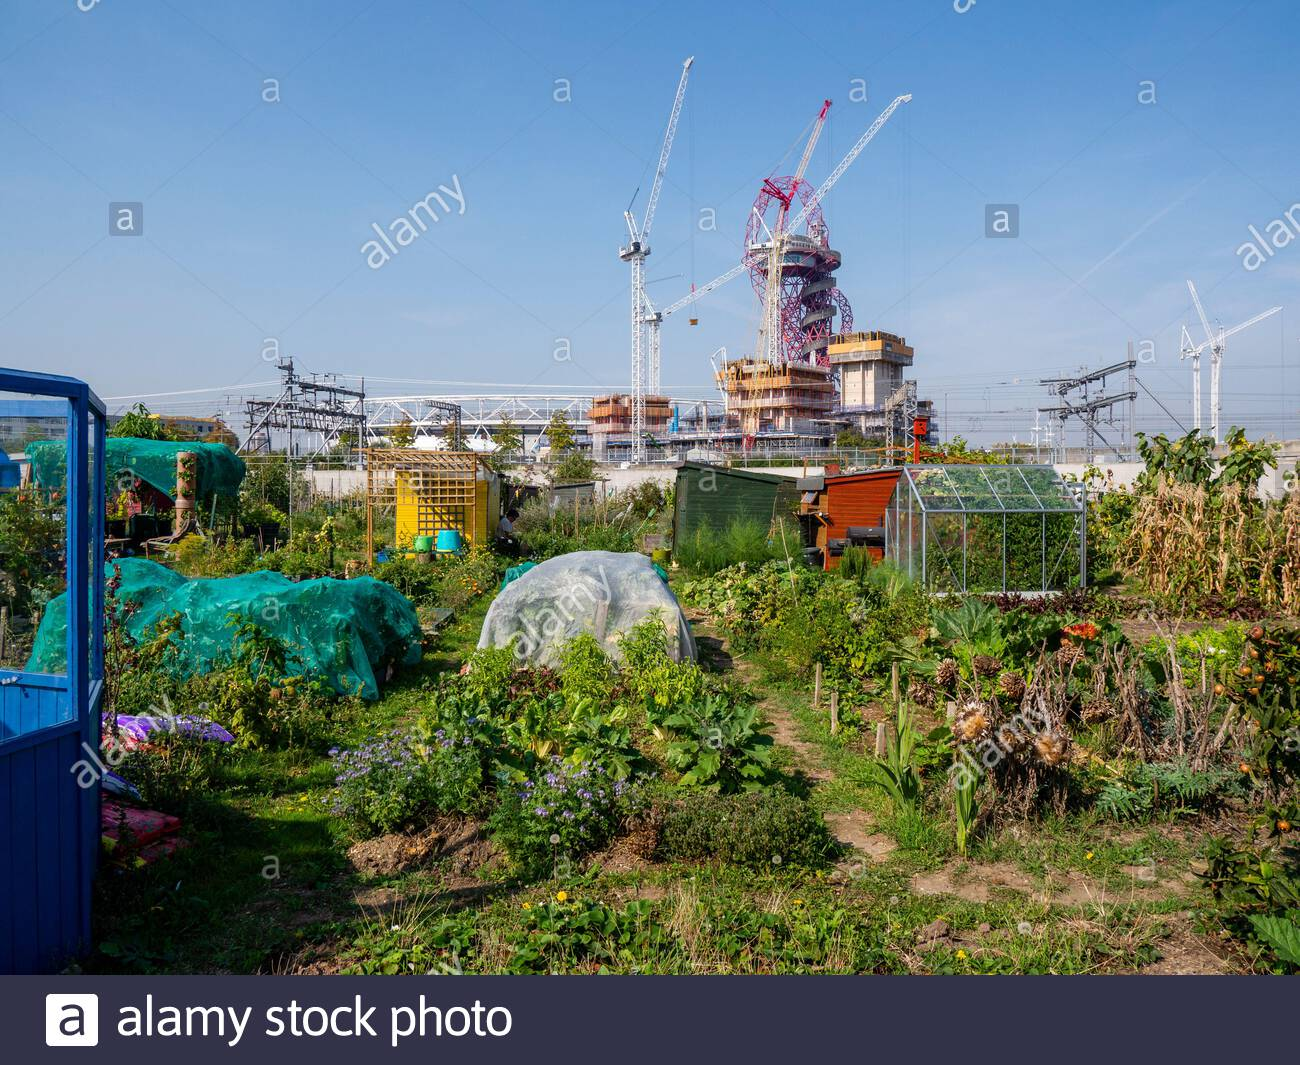 pudding-mill-allotments-by-the-olympic-p